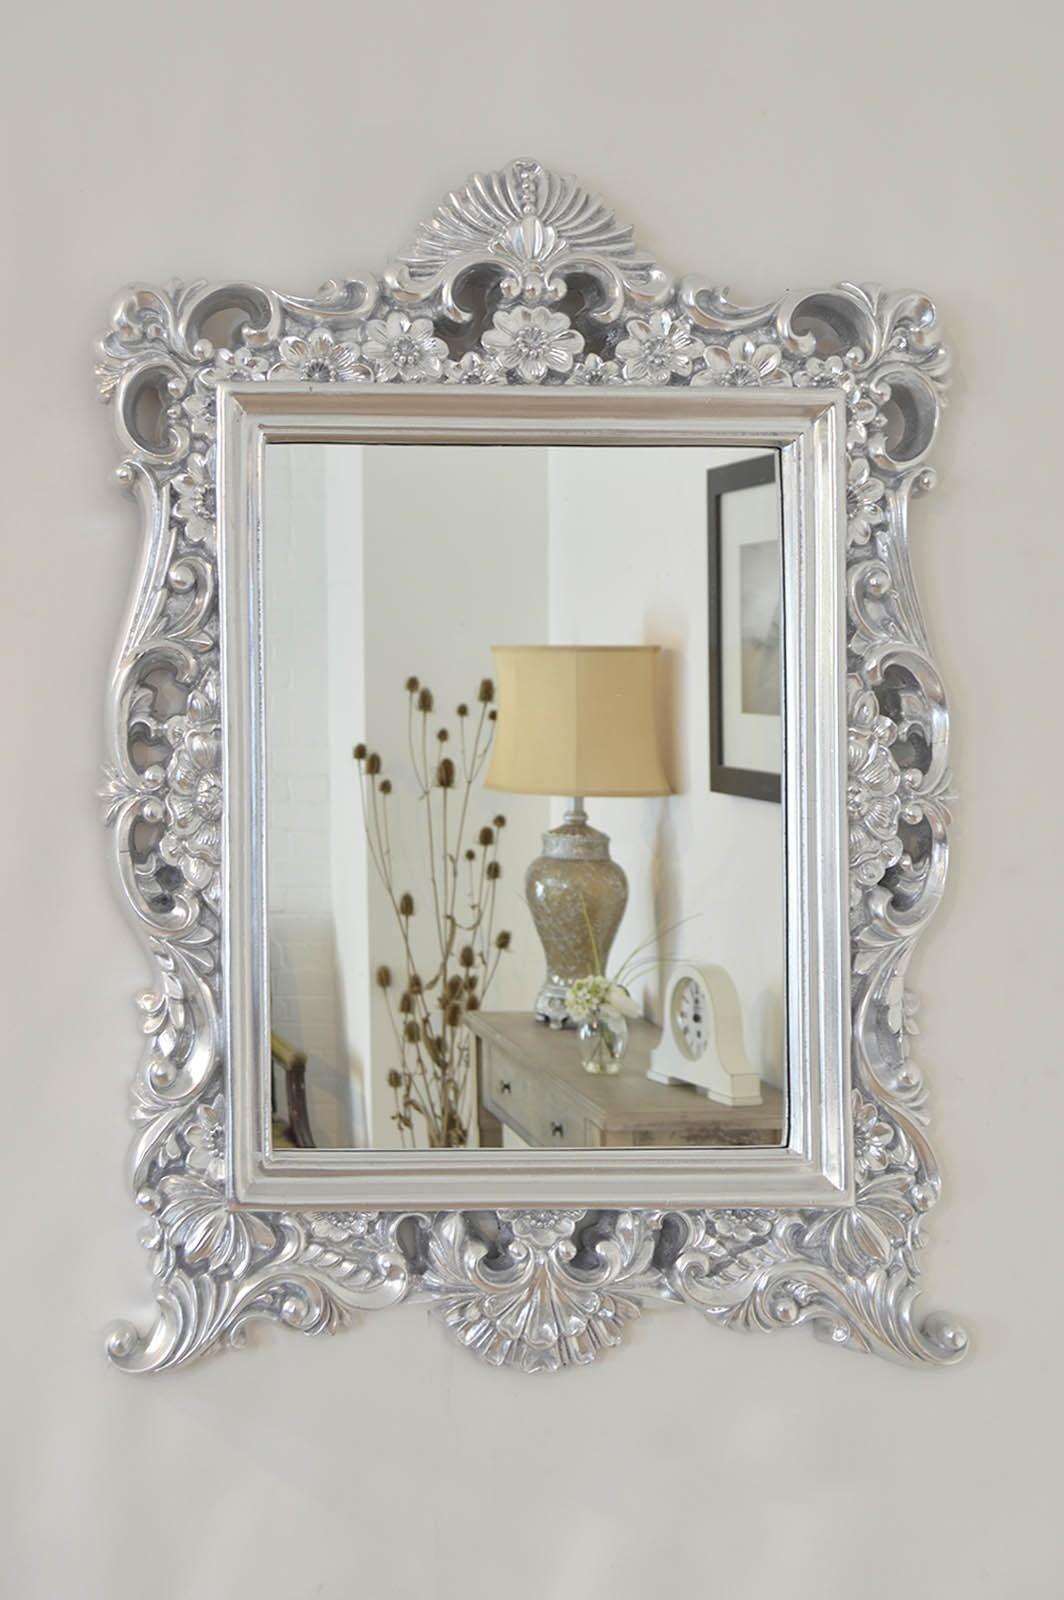 Large Silver Baroque Style Portrait Ornate Wall Mirror 2ft9 X 2ft1 Intended For Ornate Silver Mirrors (Image 7 of 15)